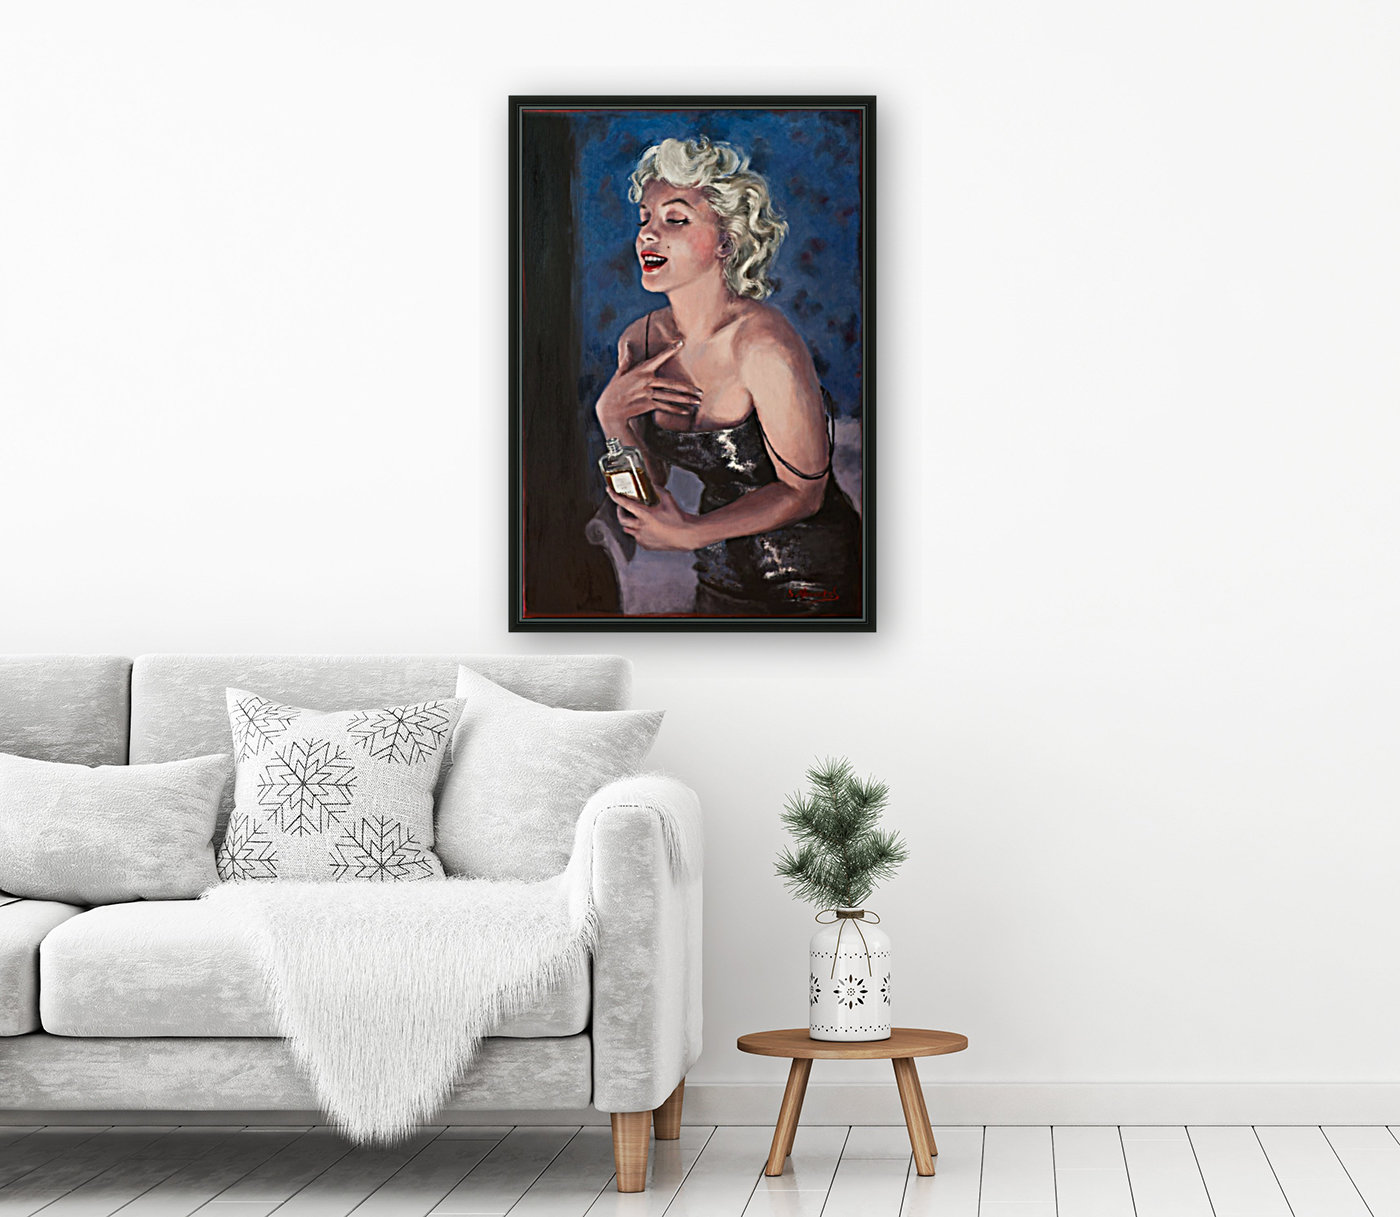 Marilyn in CHANEL 5 oil painting portrait 1  Art